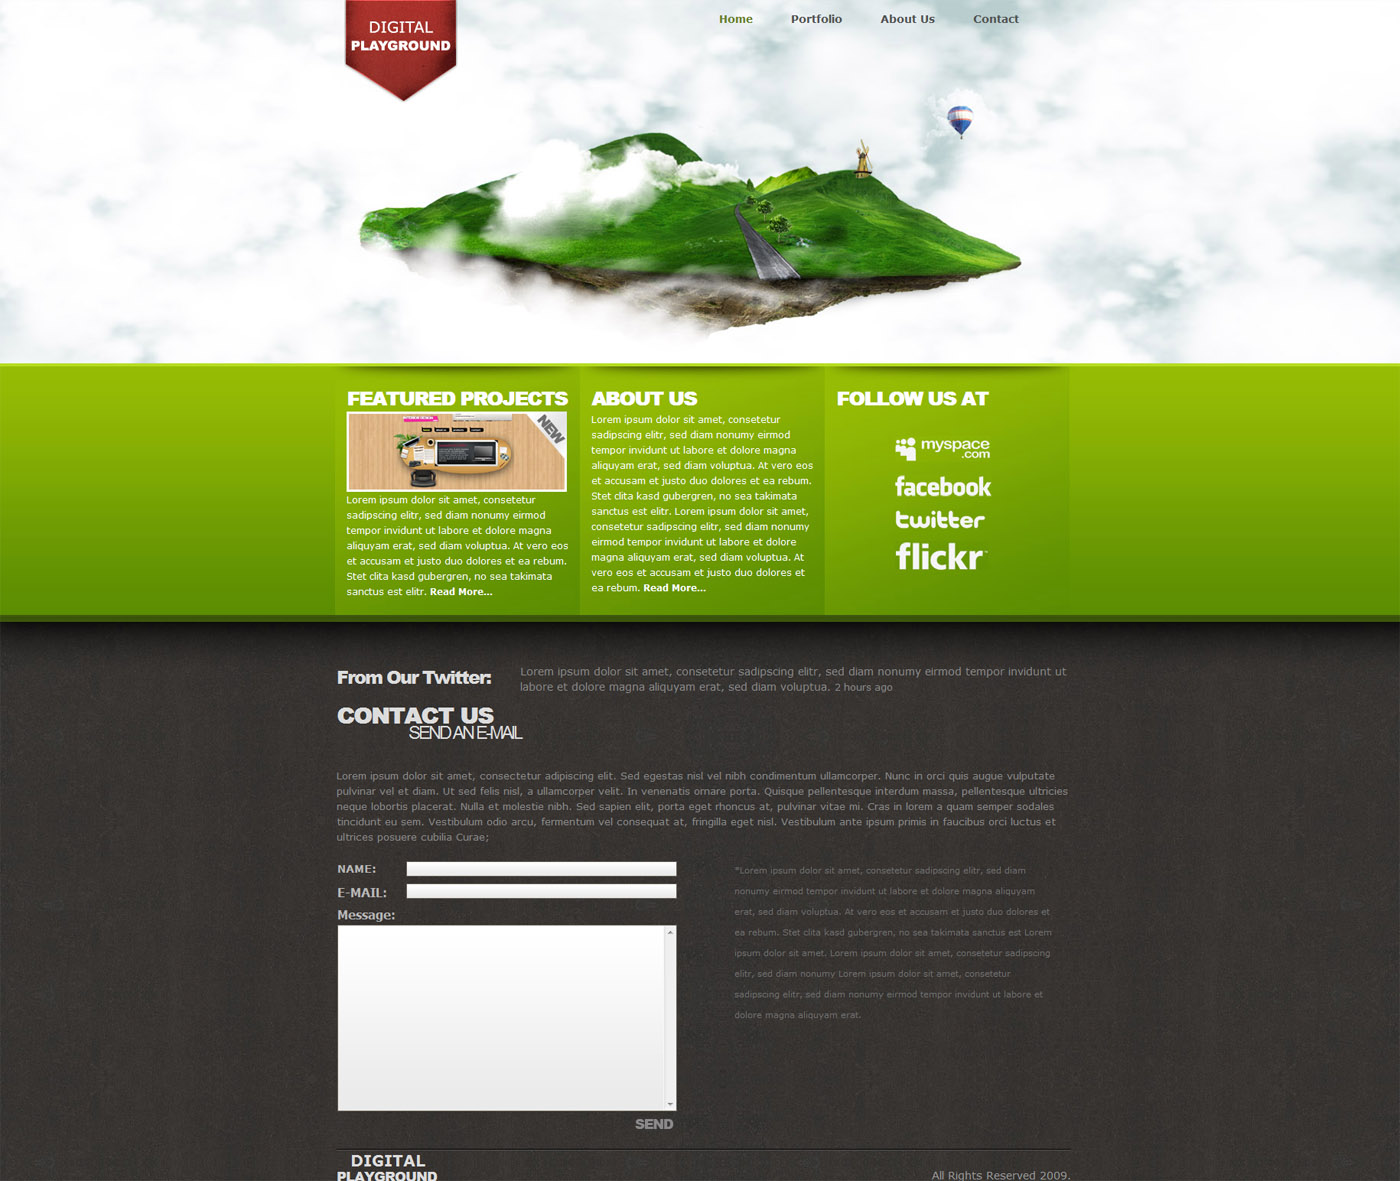 Digital Playground Modern Floating Island Template